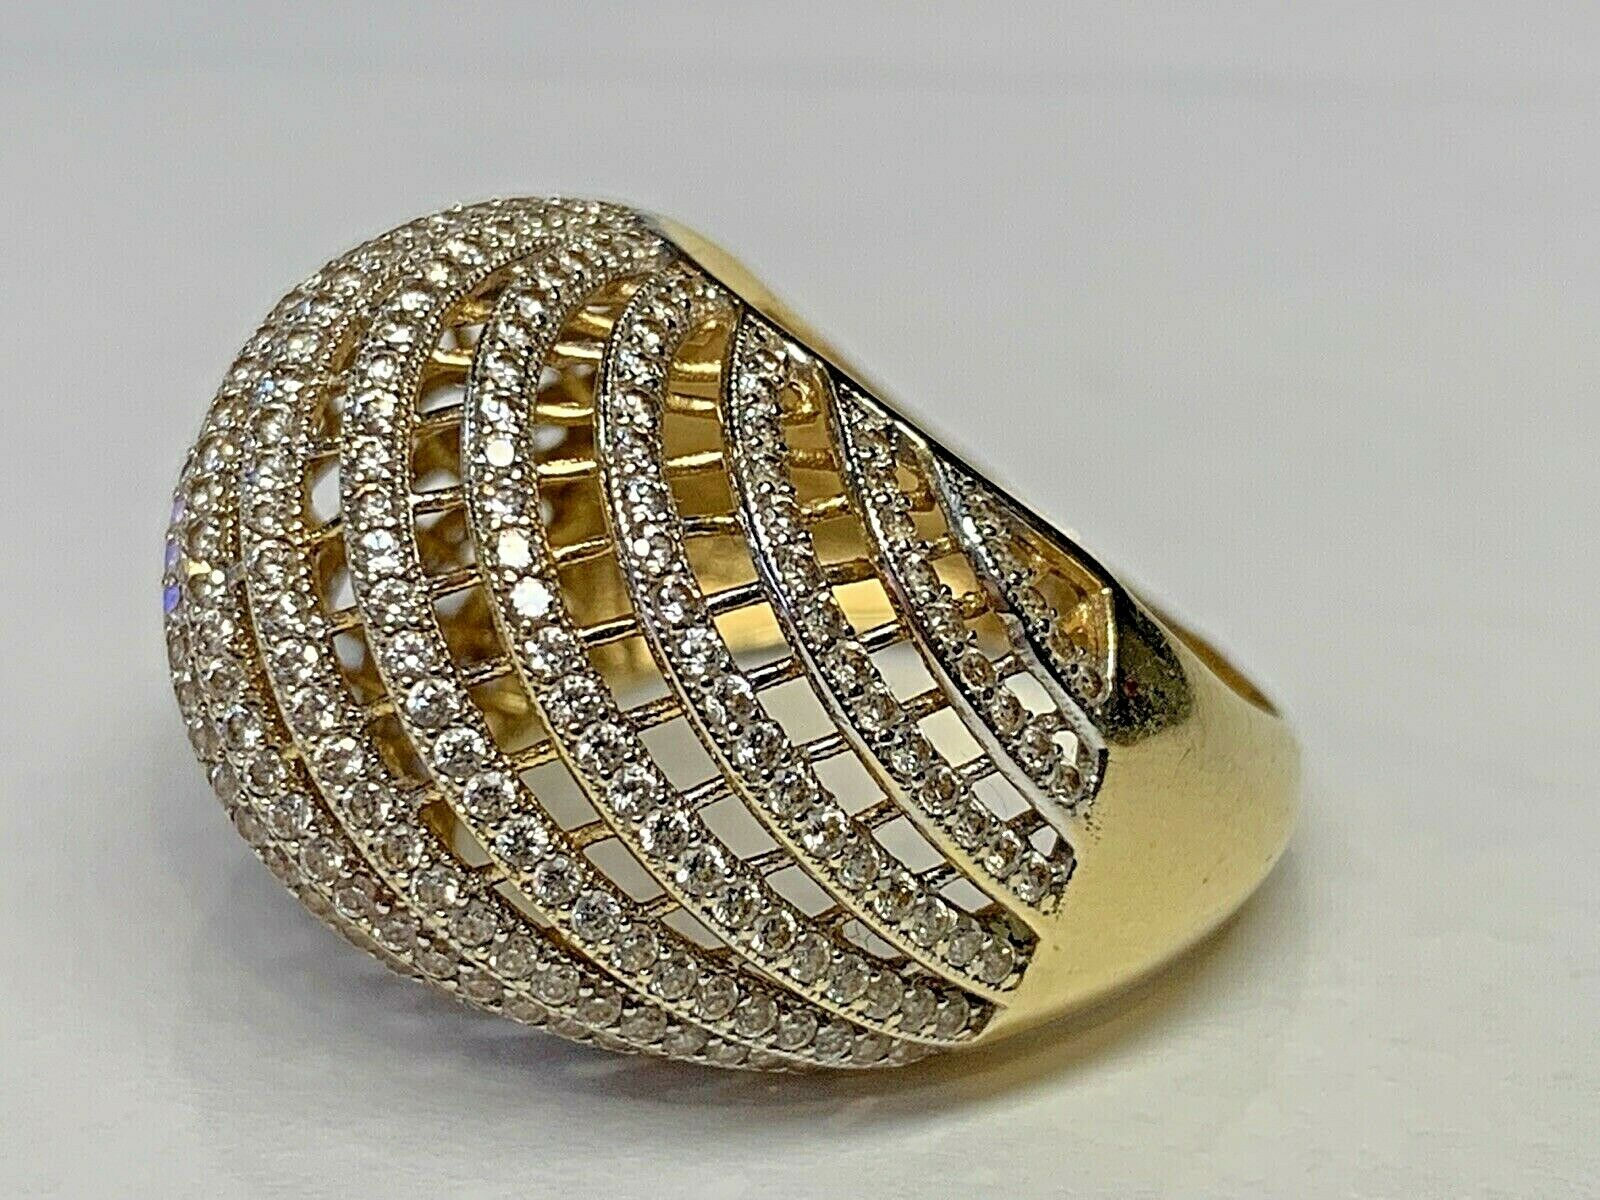 Designer 18k 750 Gold Ladies Cocktail Ring Size 8